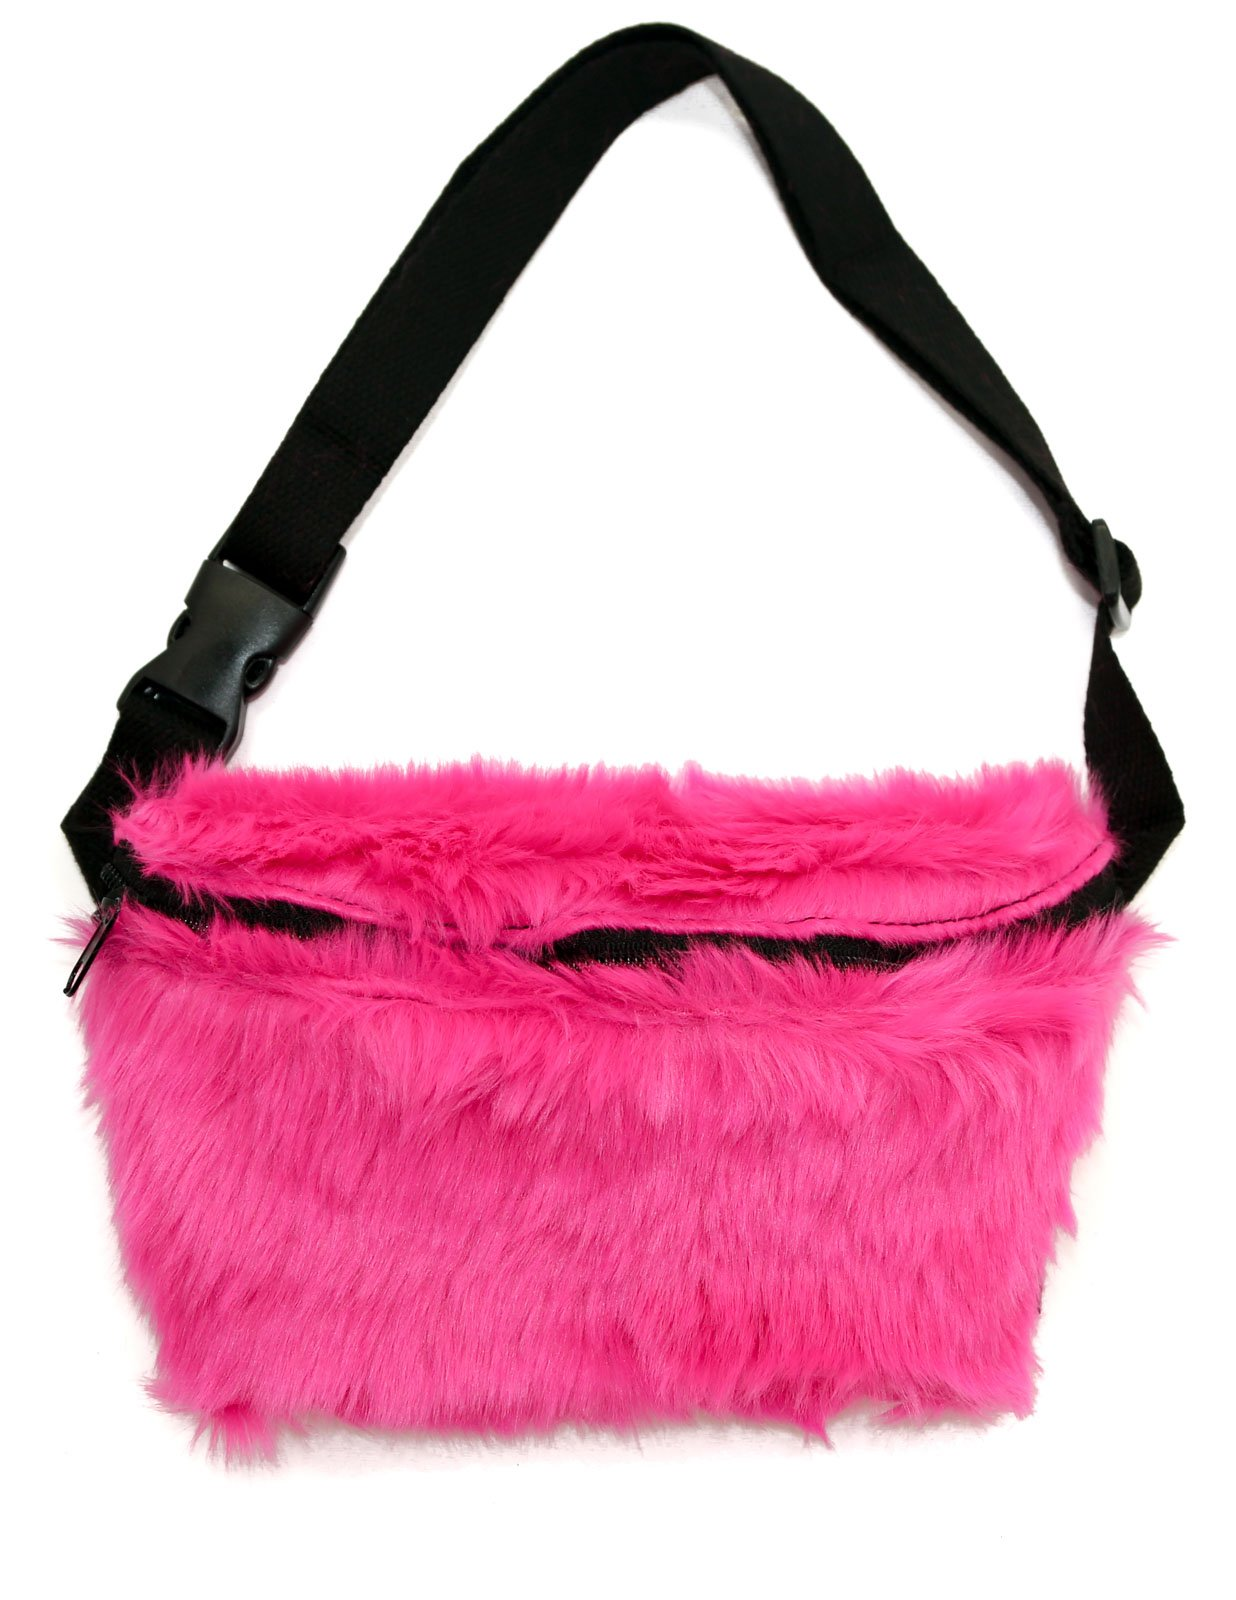 Fydelity - Fanny Pack: SHAGGY Neon Pink